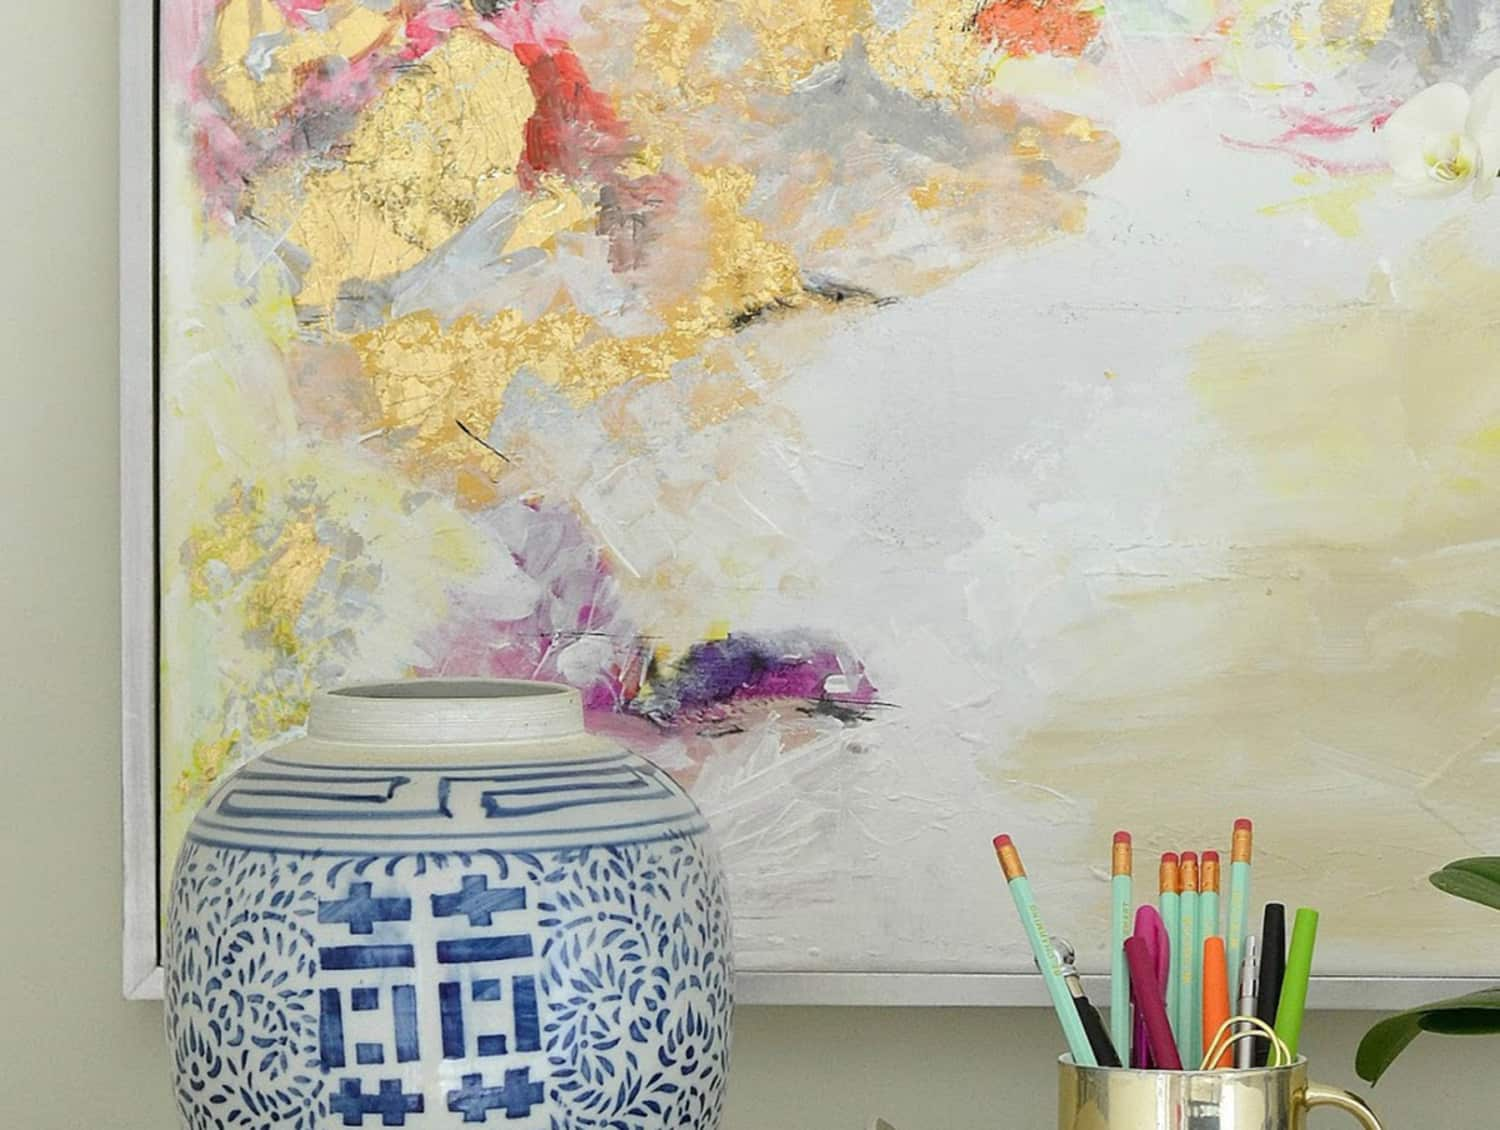 Make Your Own Art: DIY Wall Art Projects for Any Design Style